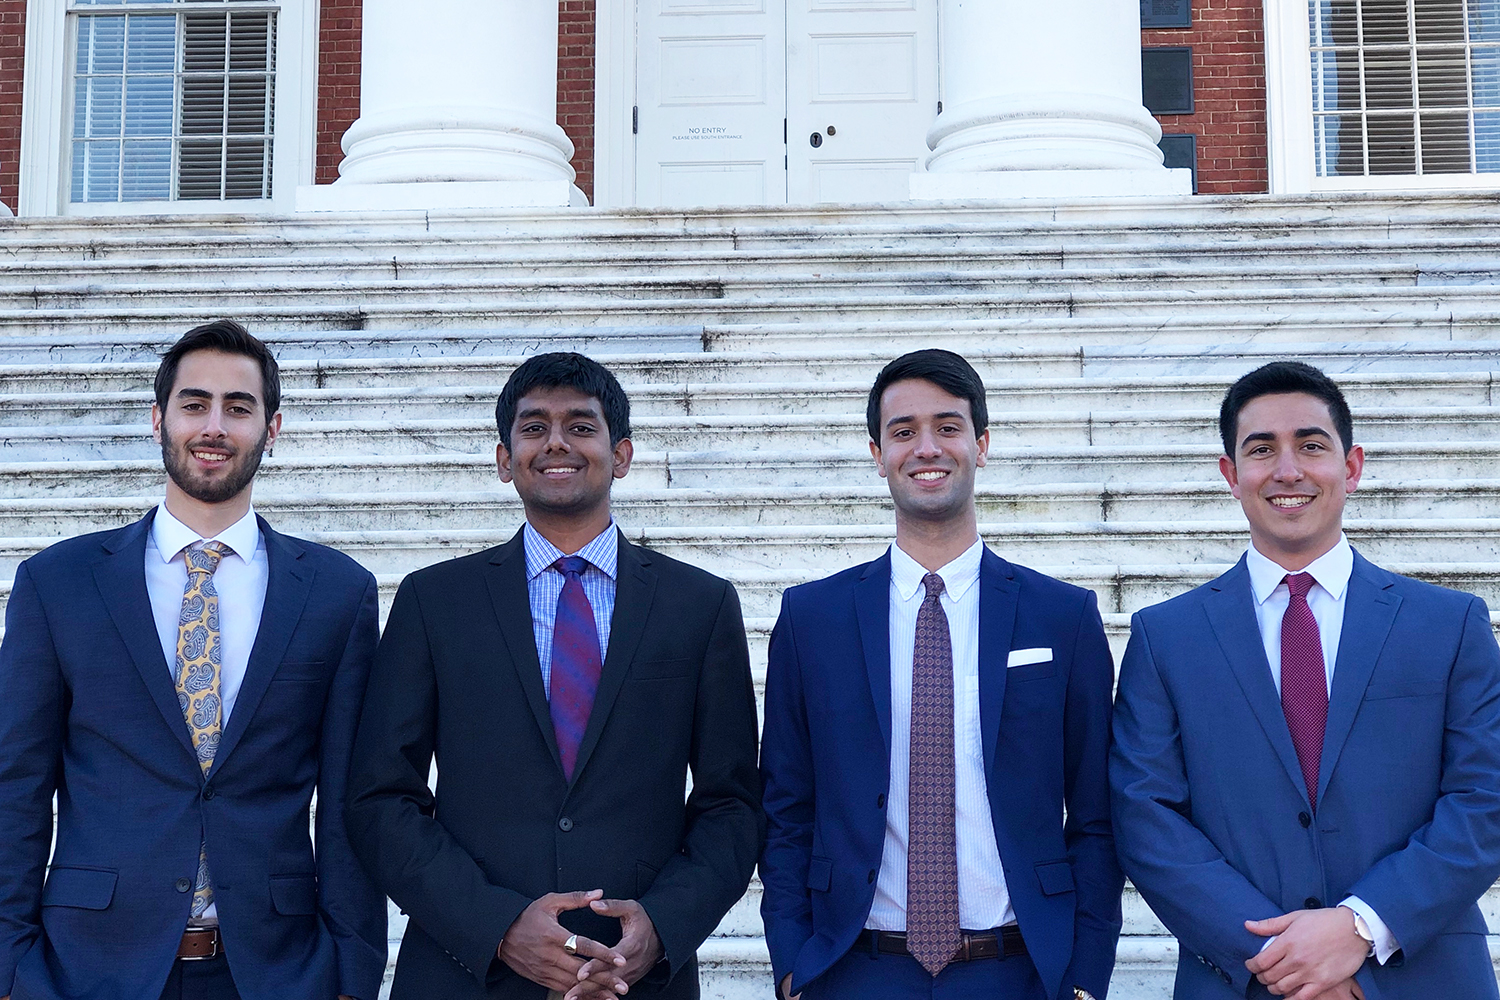 Biomedical engineering students, from left, Eric Taleghani, Rohit Rustagi, Alexander Singh and George Vithoulkas are working on technologies to diagnose and treat scoliosis.